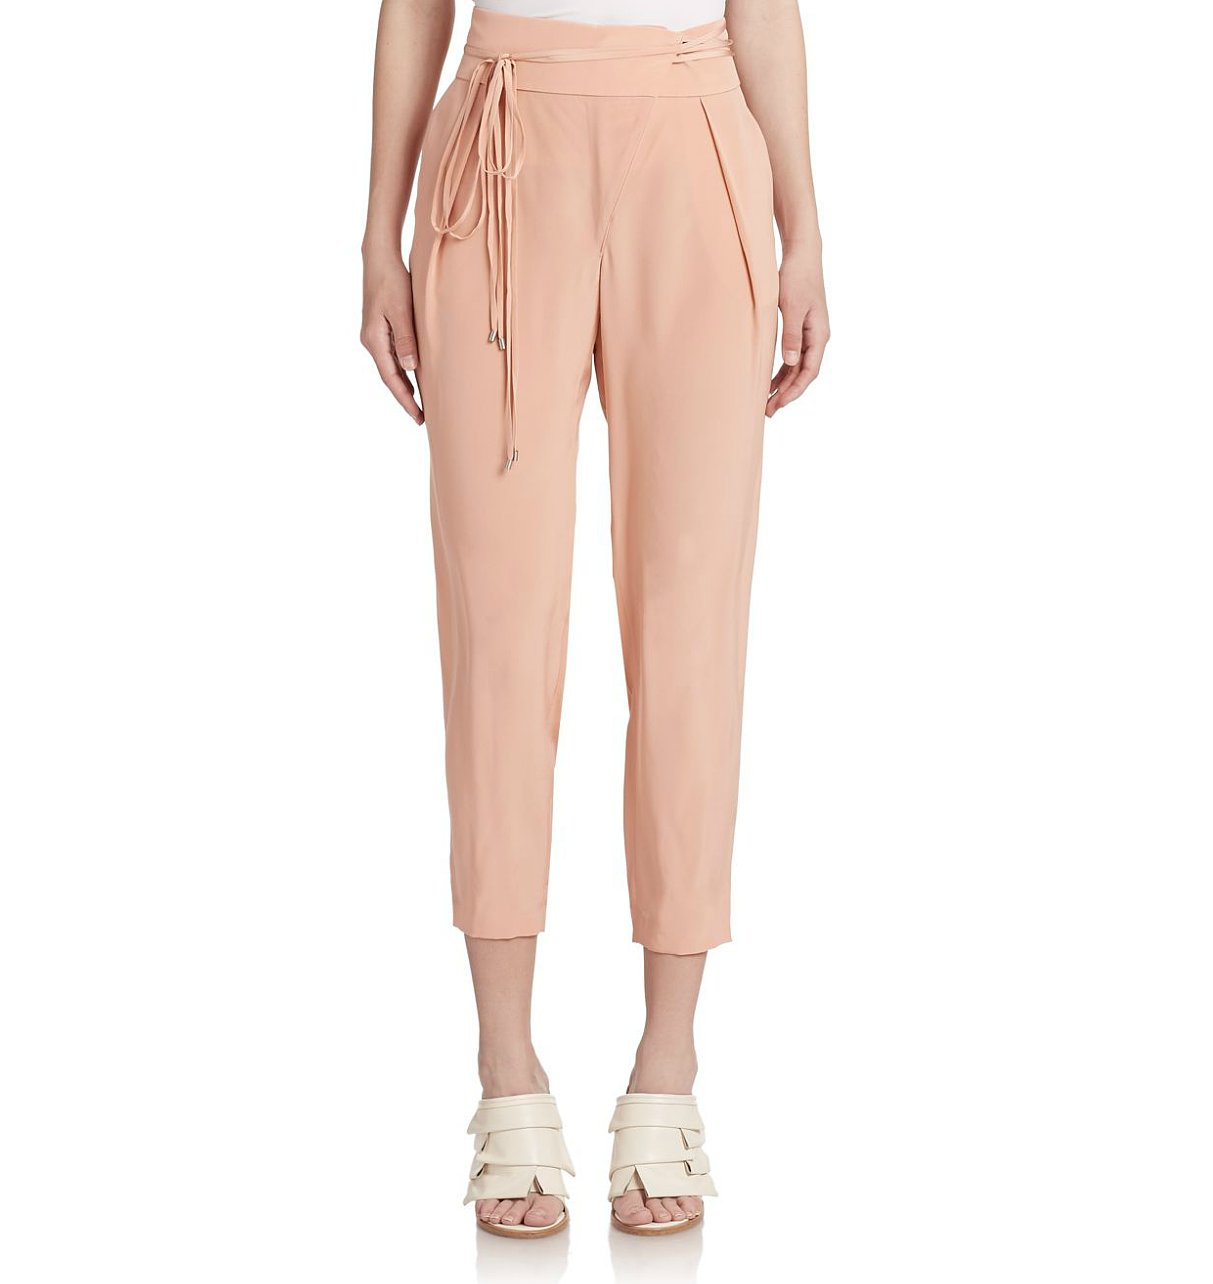 Tibi Cropped Silk Pants ($350)